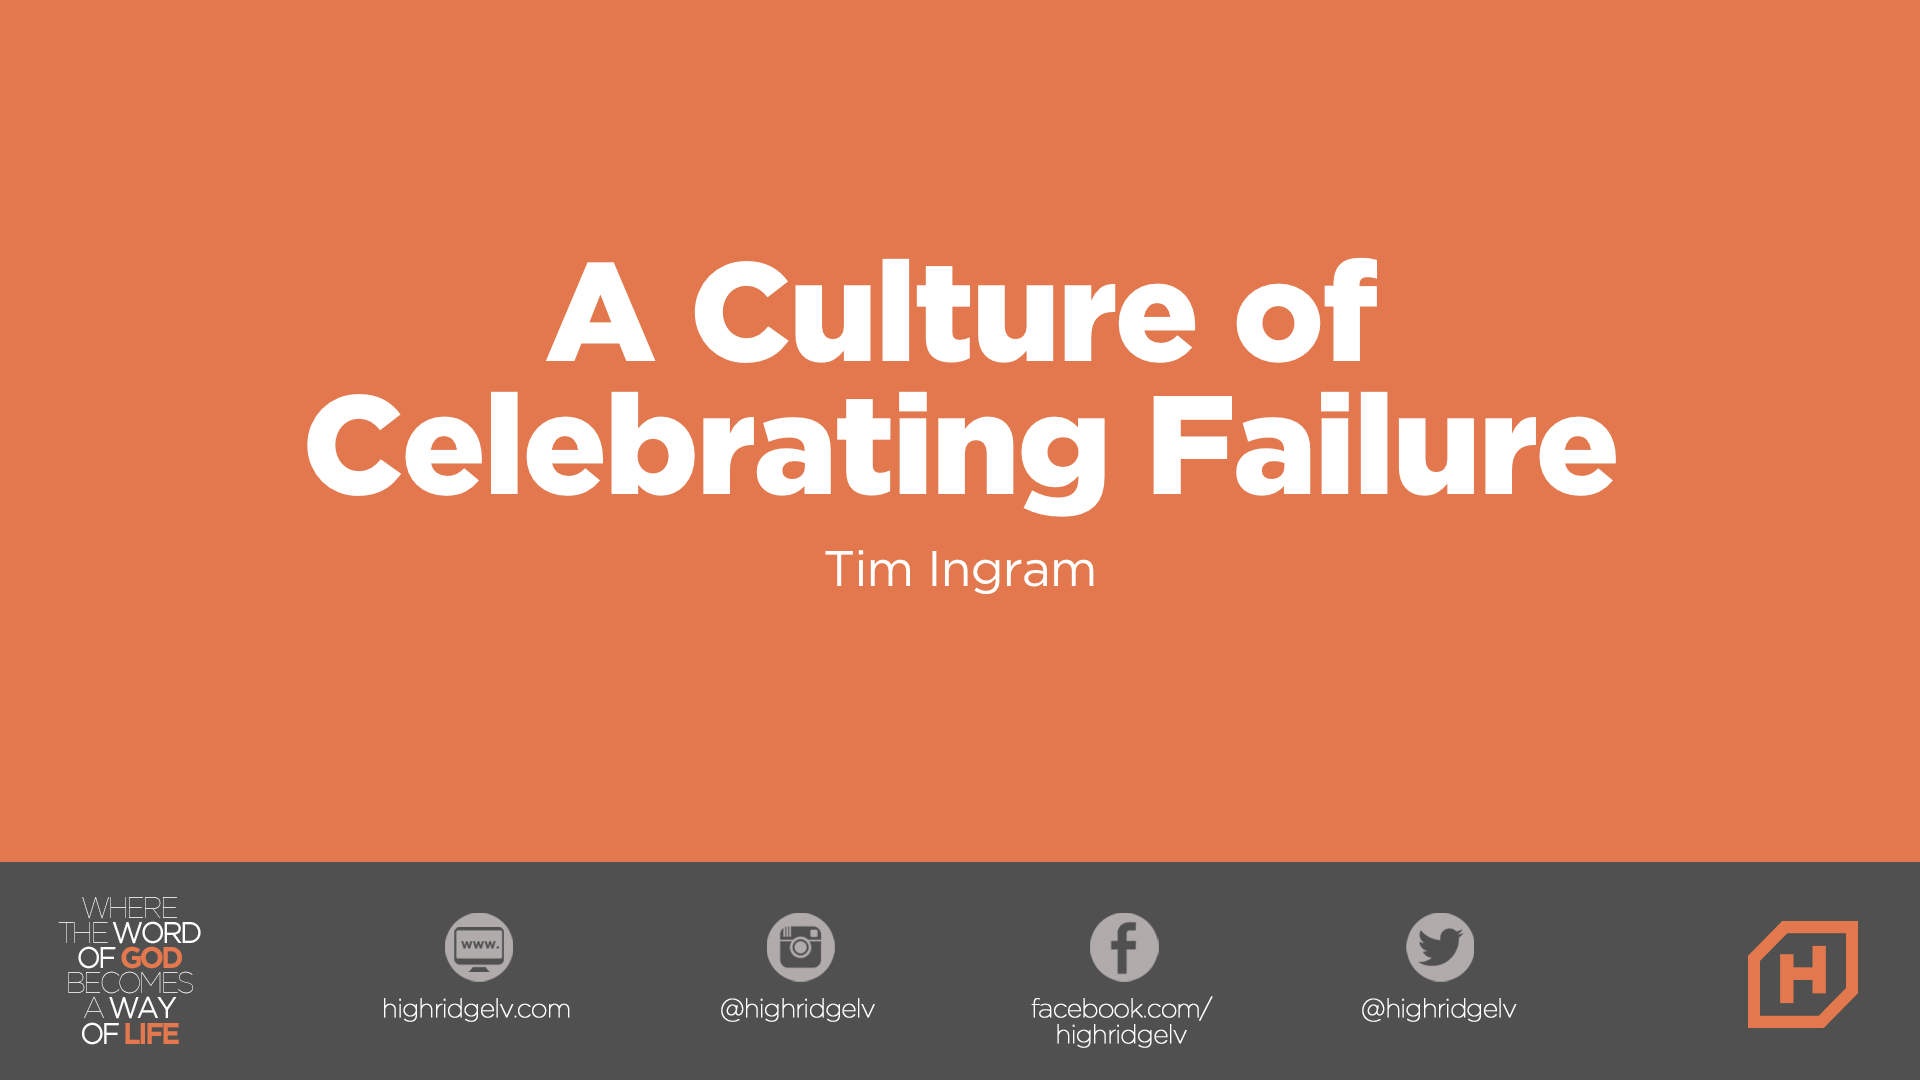 A Culture Of Celebrating Failure